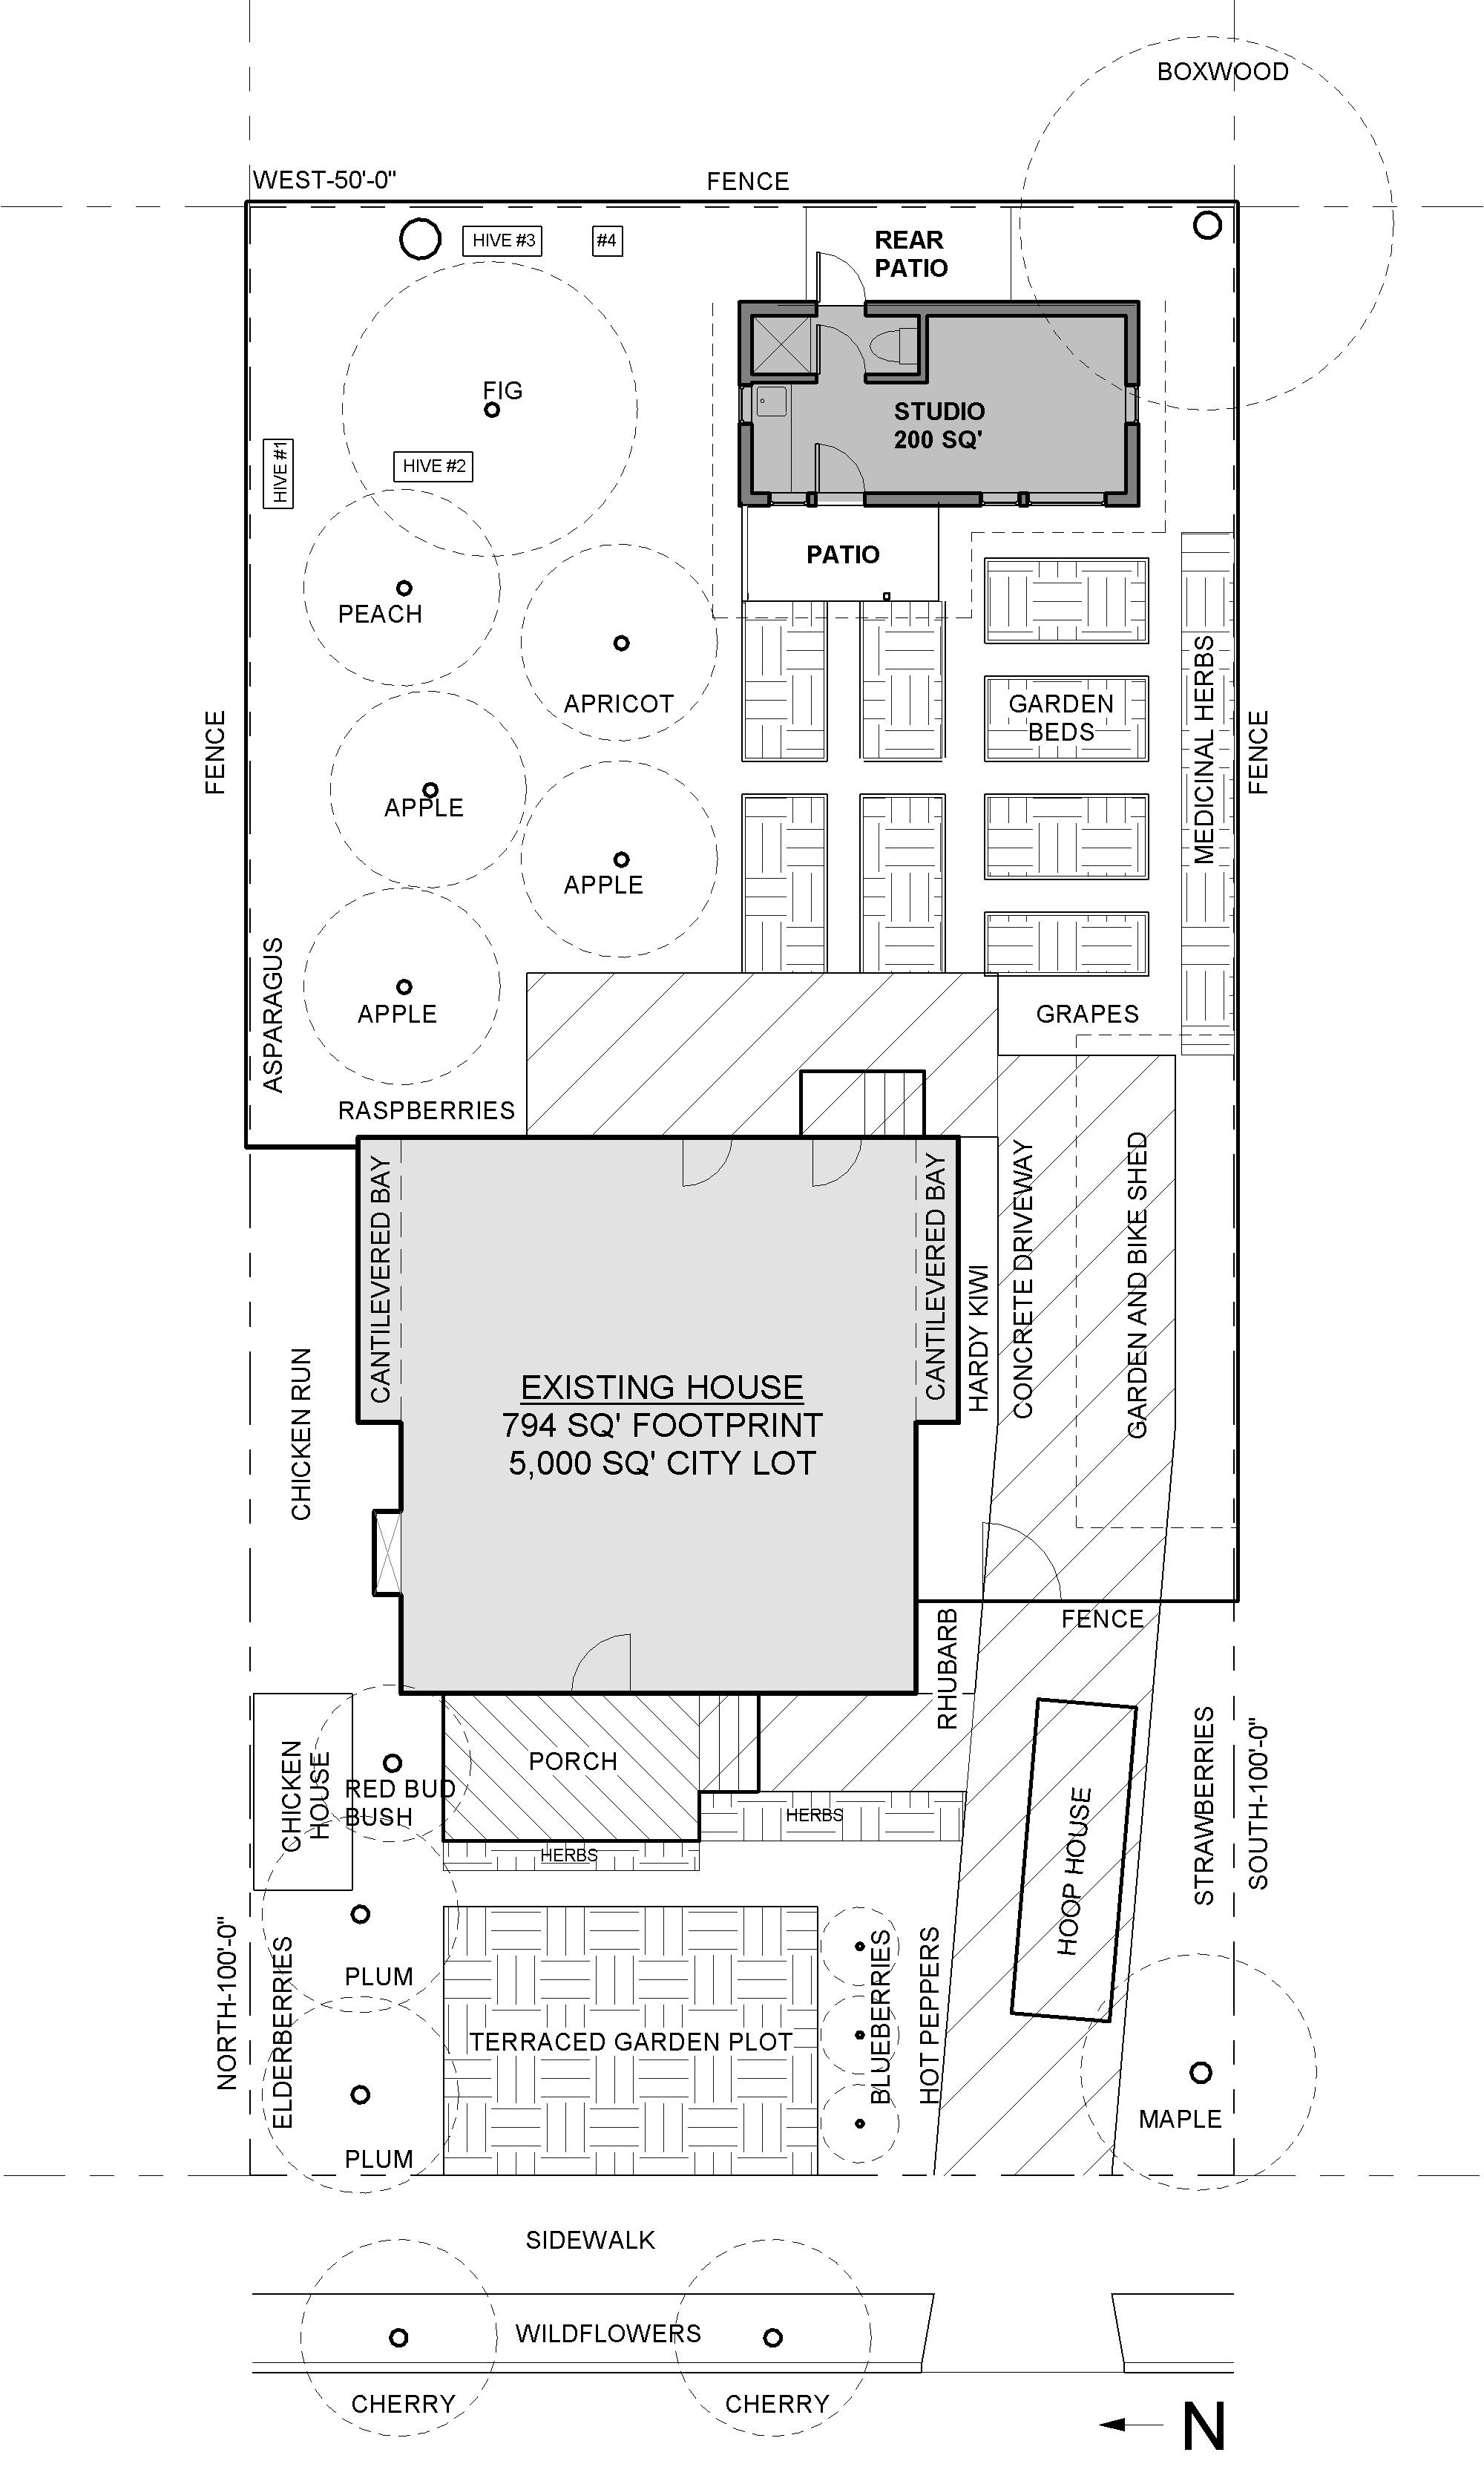 400 Square Foot Apartment Backyard - site-plan_Amazing 400 Square Foot Apartment Backyard - site-plan  Image_884591.jpg